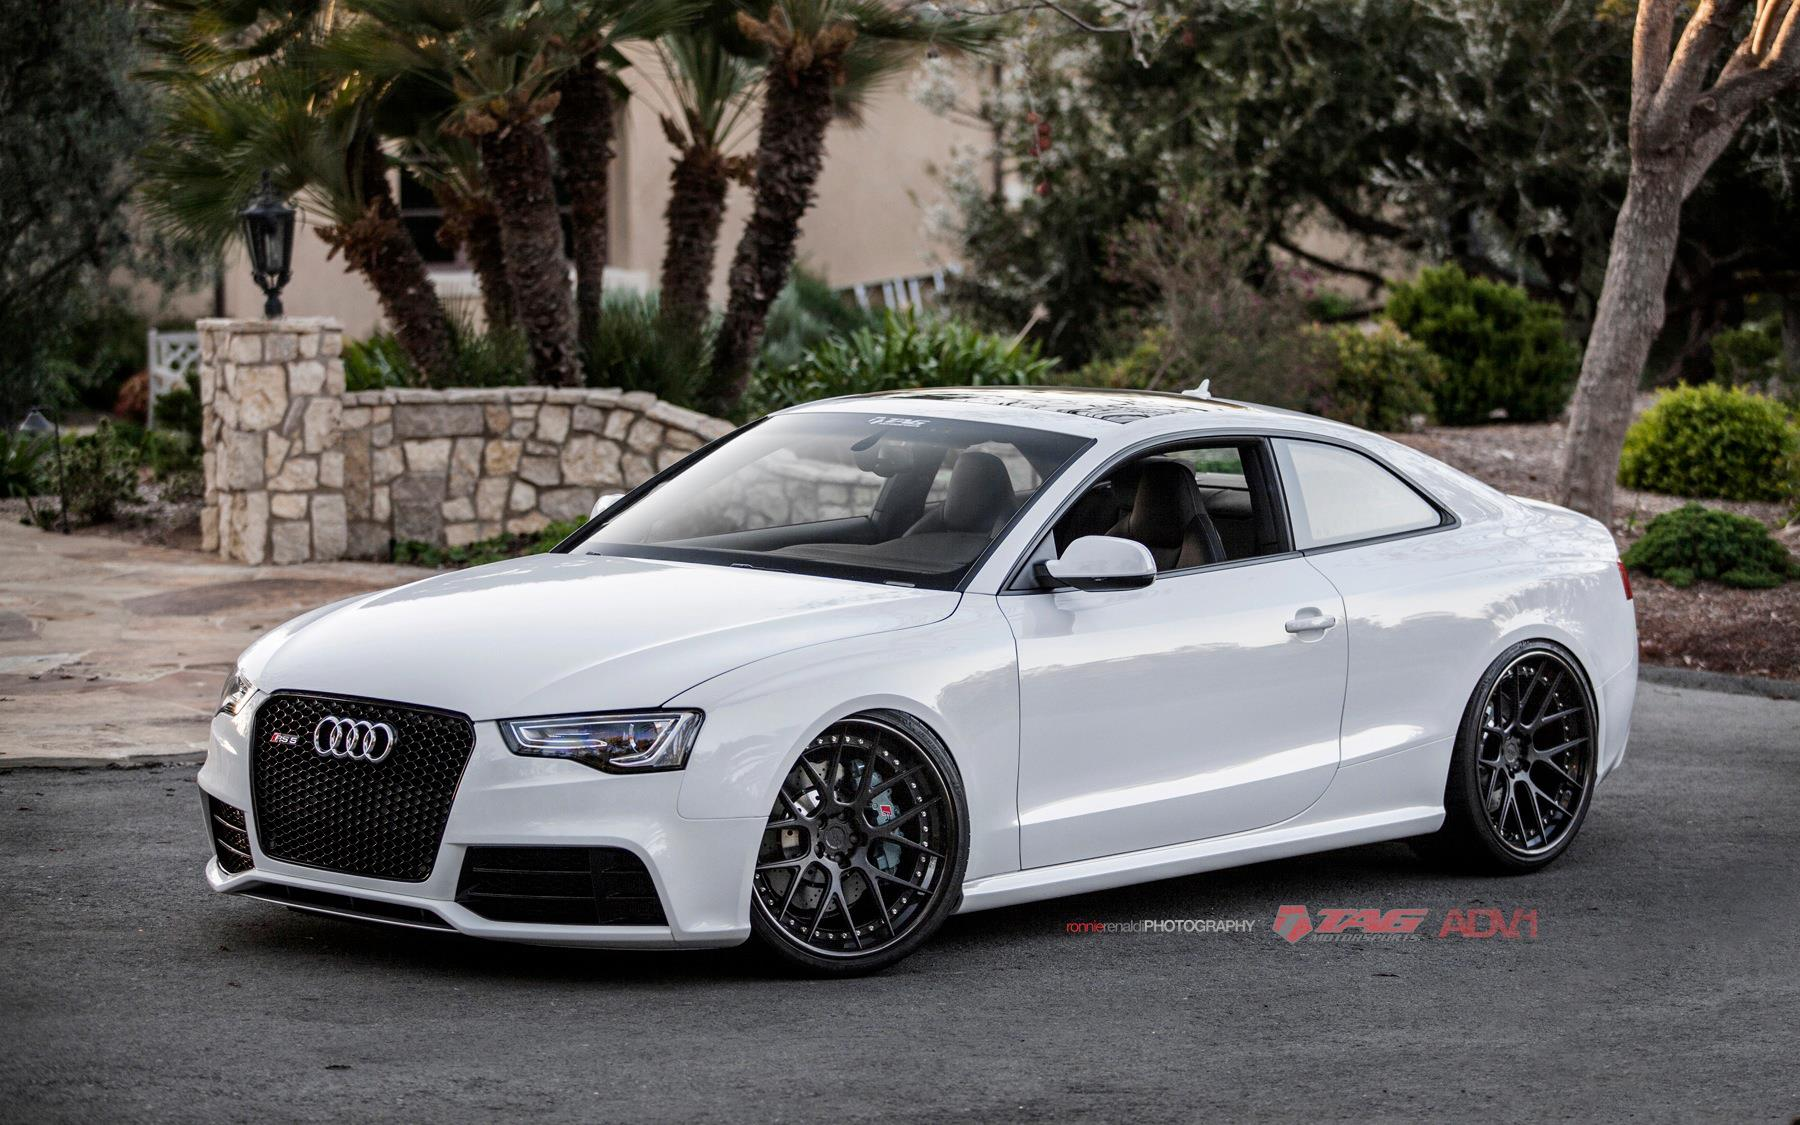 2013 Audi RS5 Sharpened Up by TAG Motorsports - autoevolution